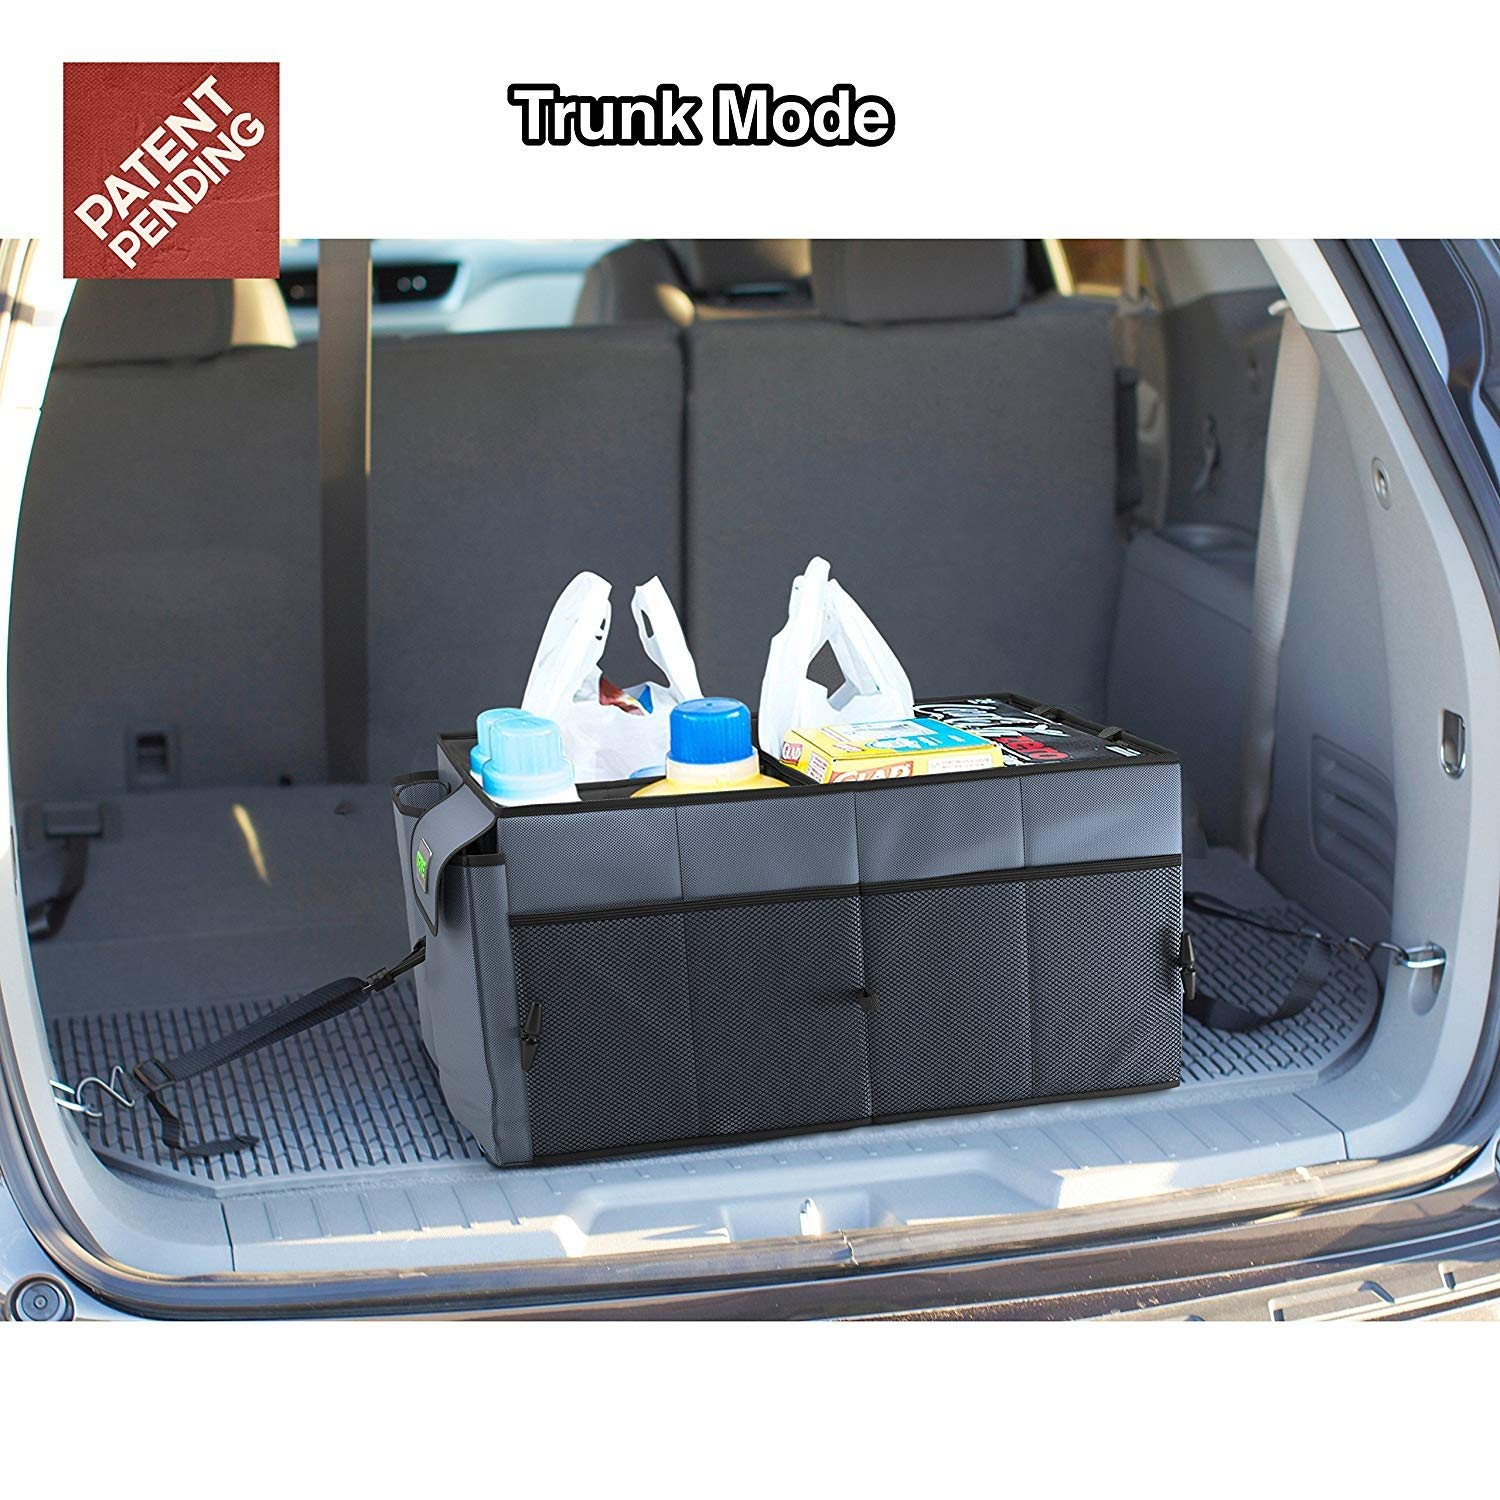 Car Trunk Storage >> Drive Auto Products Car Trunk Storage Organizer With Straps 1 Pack